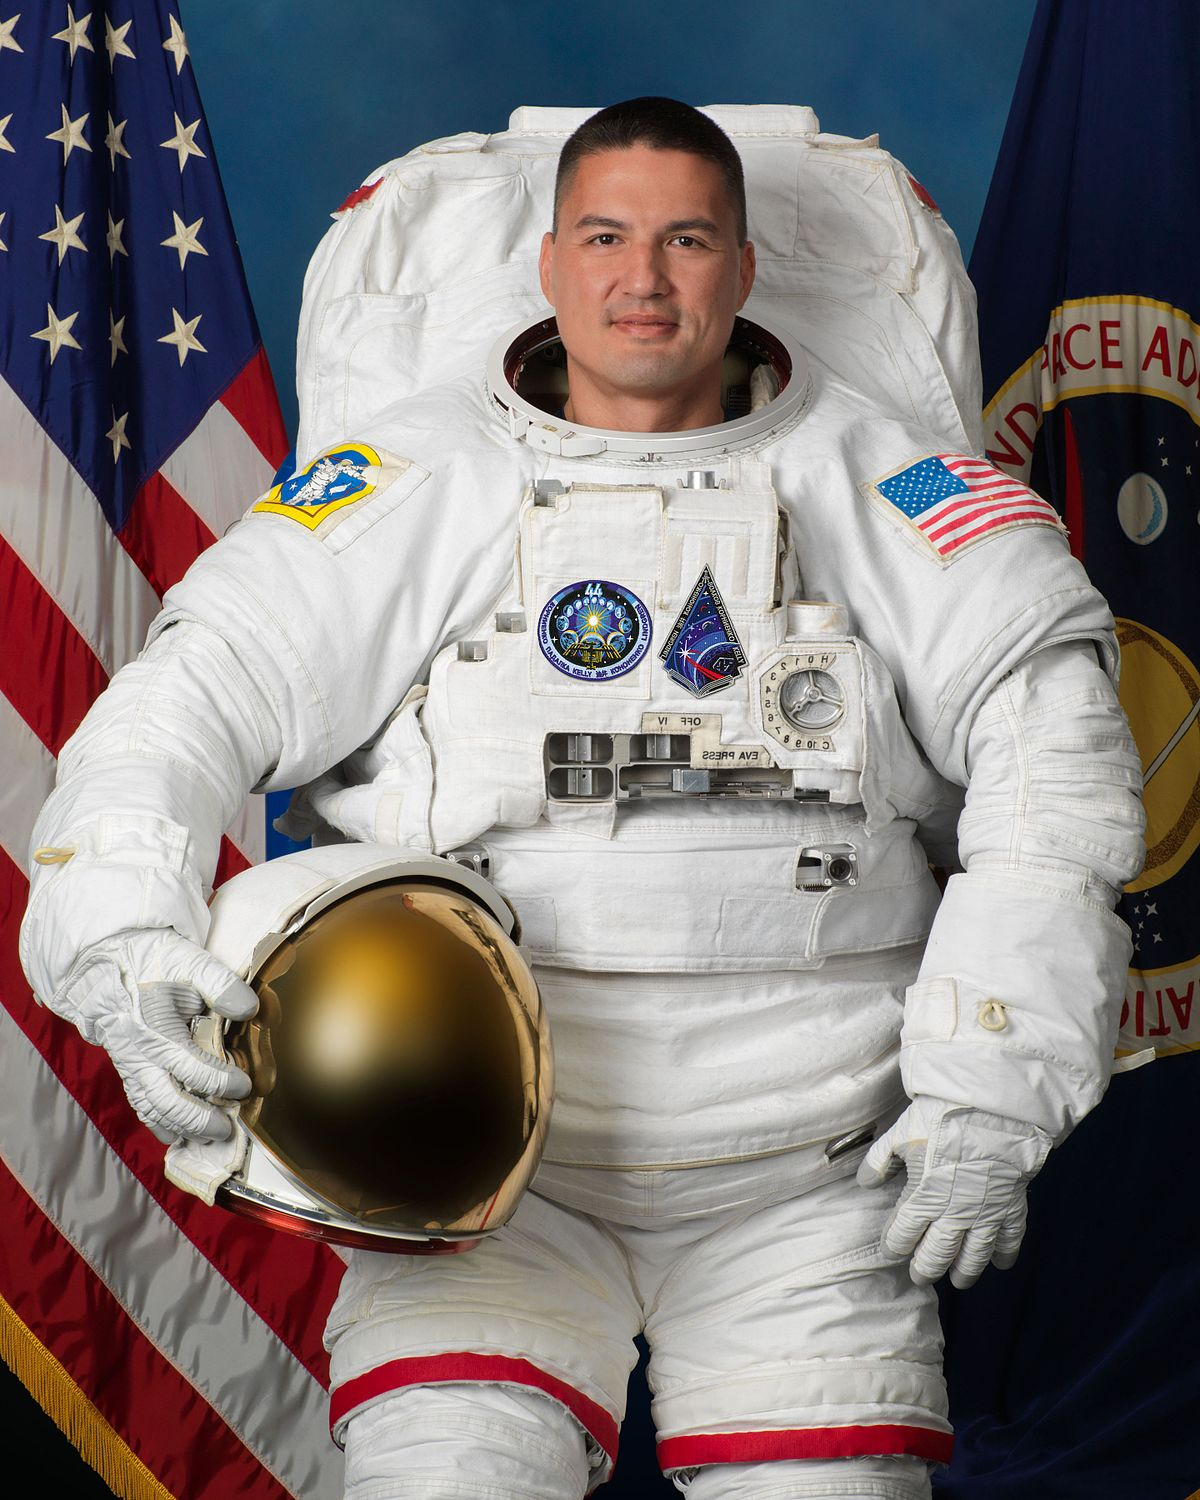 astronaut life after space - photo #15